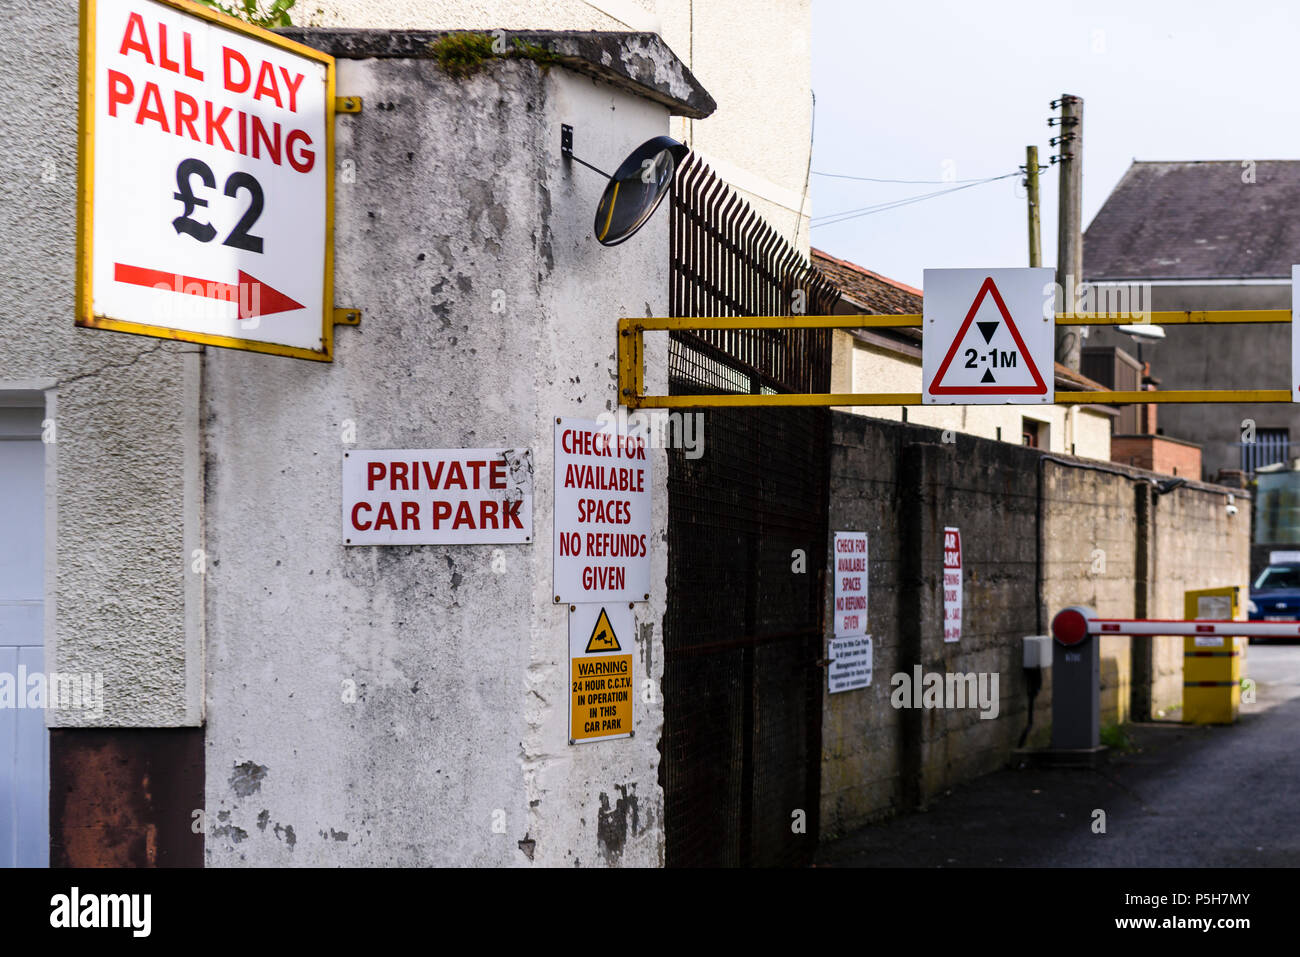 Entrance to a private car park, with sign saying 'All Day Parking £2' - Stock Image